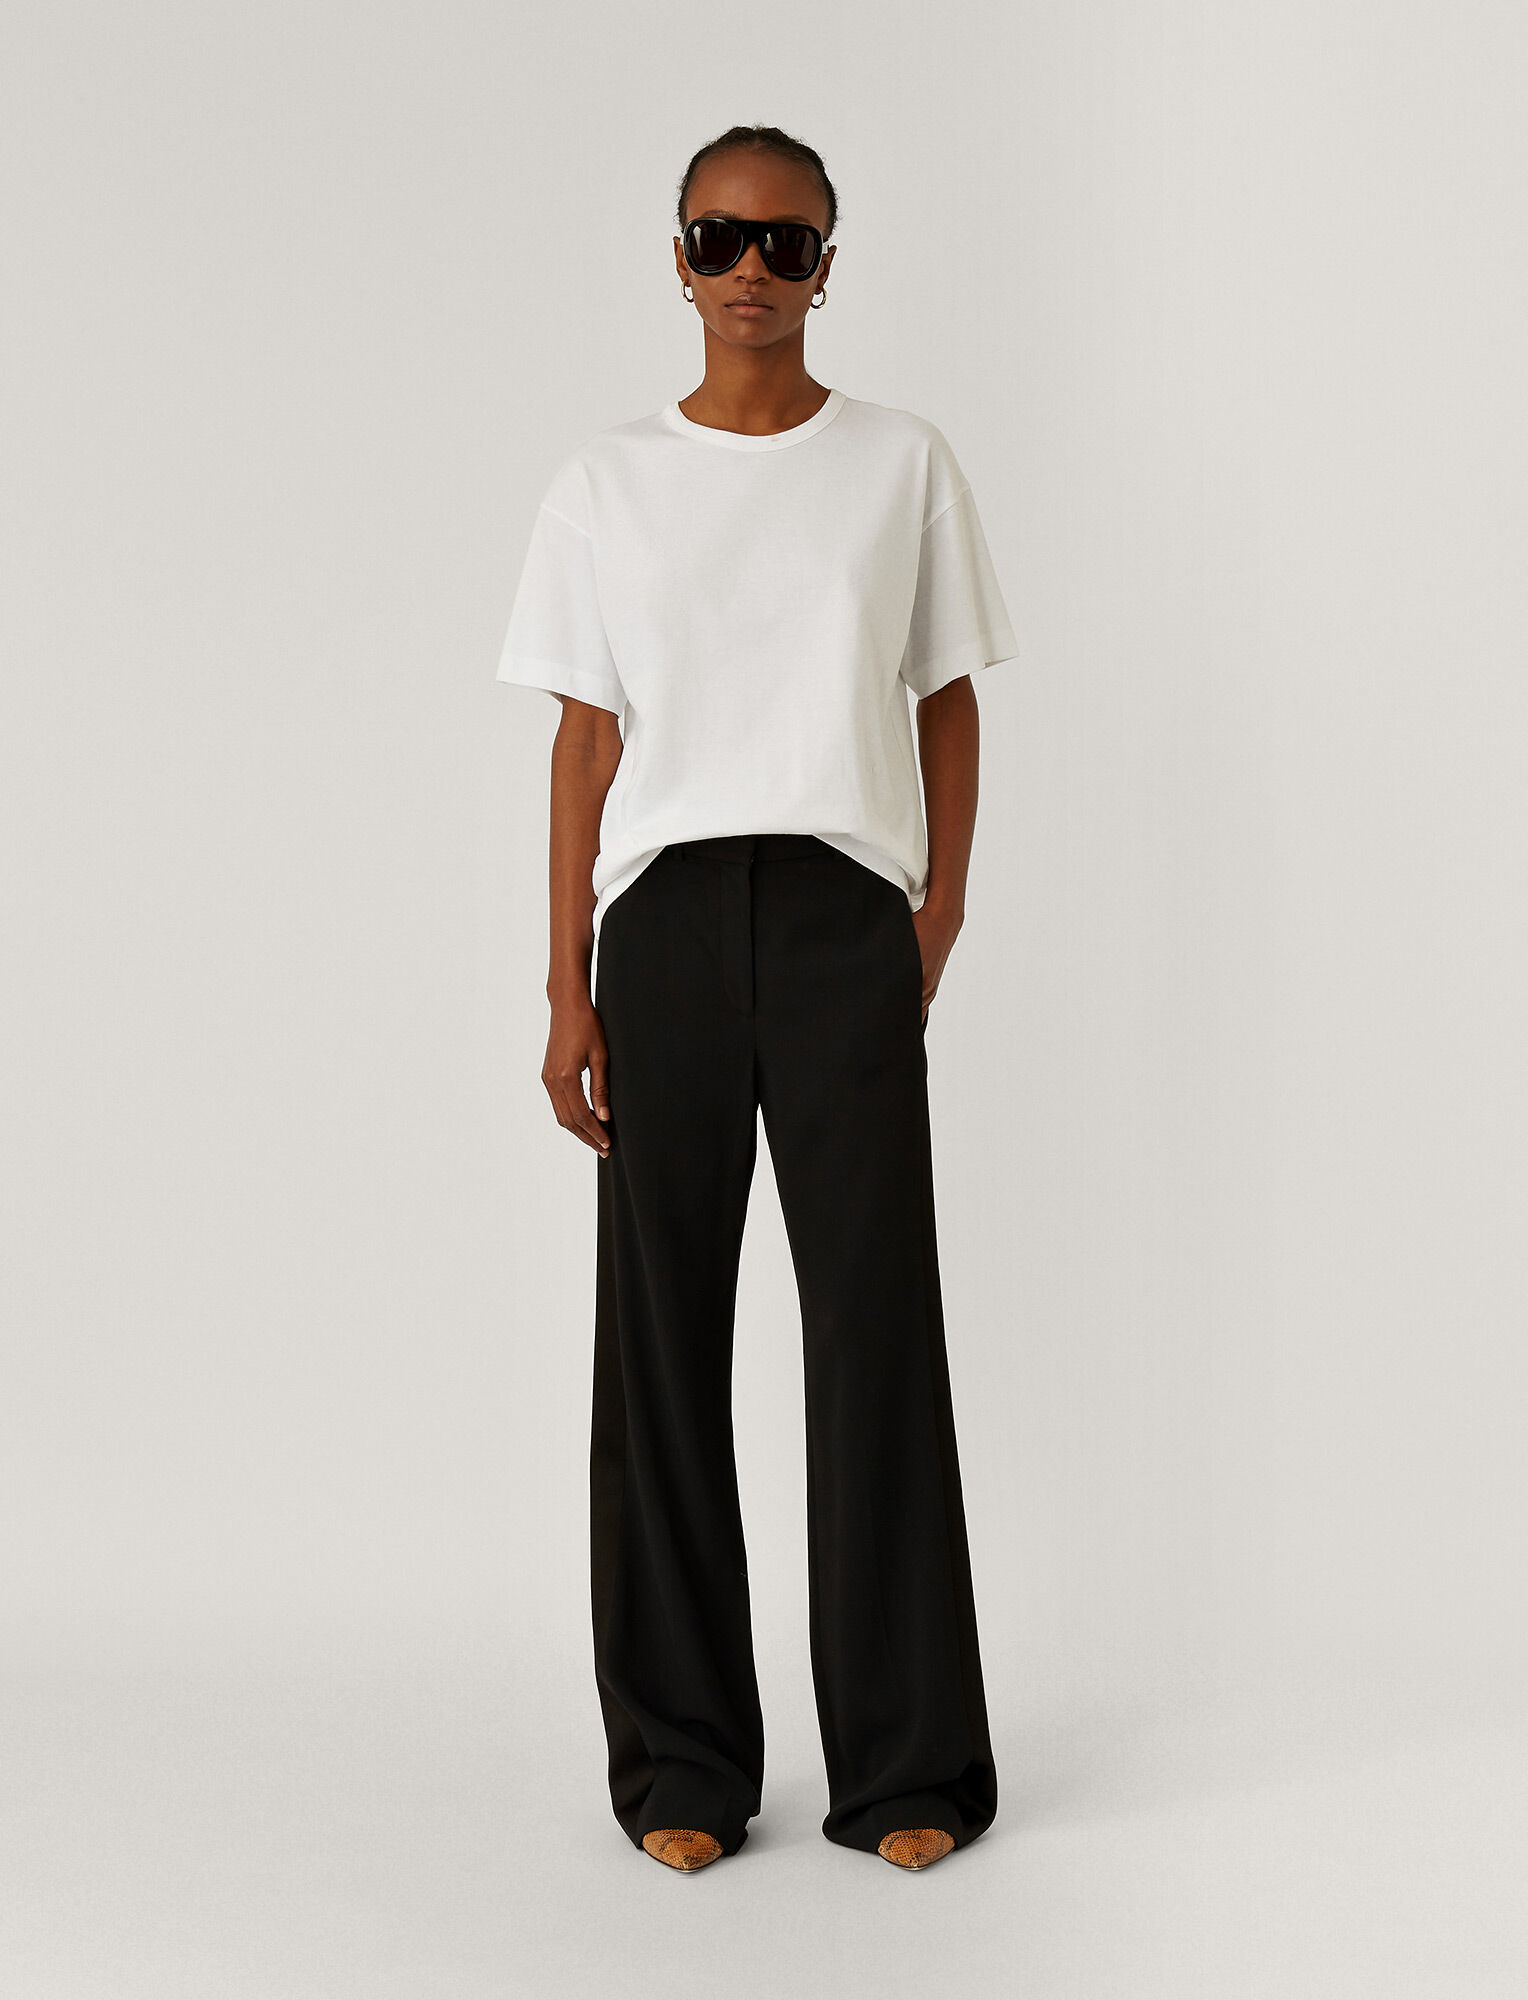 Joseph, Morissey Tuxedo Stretch Cady Trouser, in BLACK